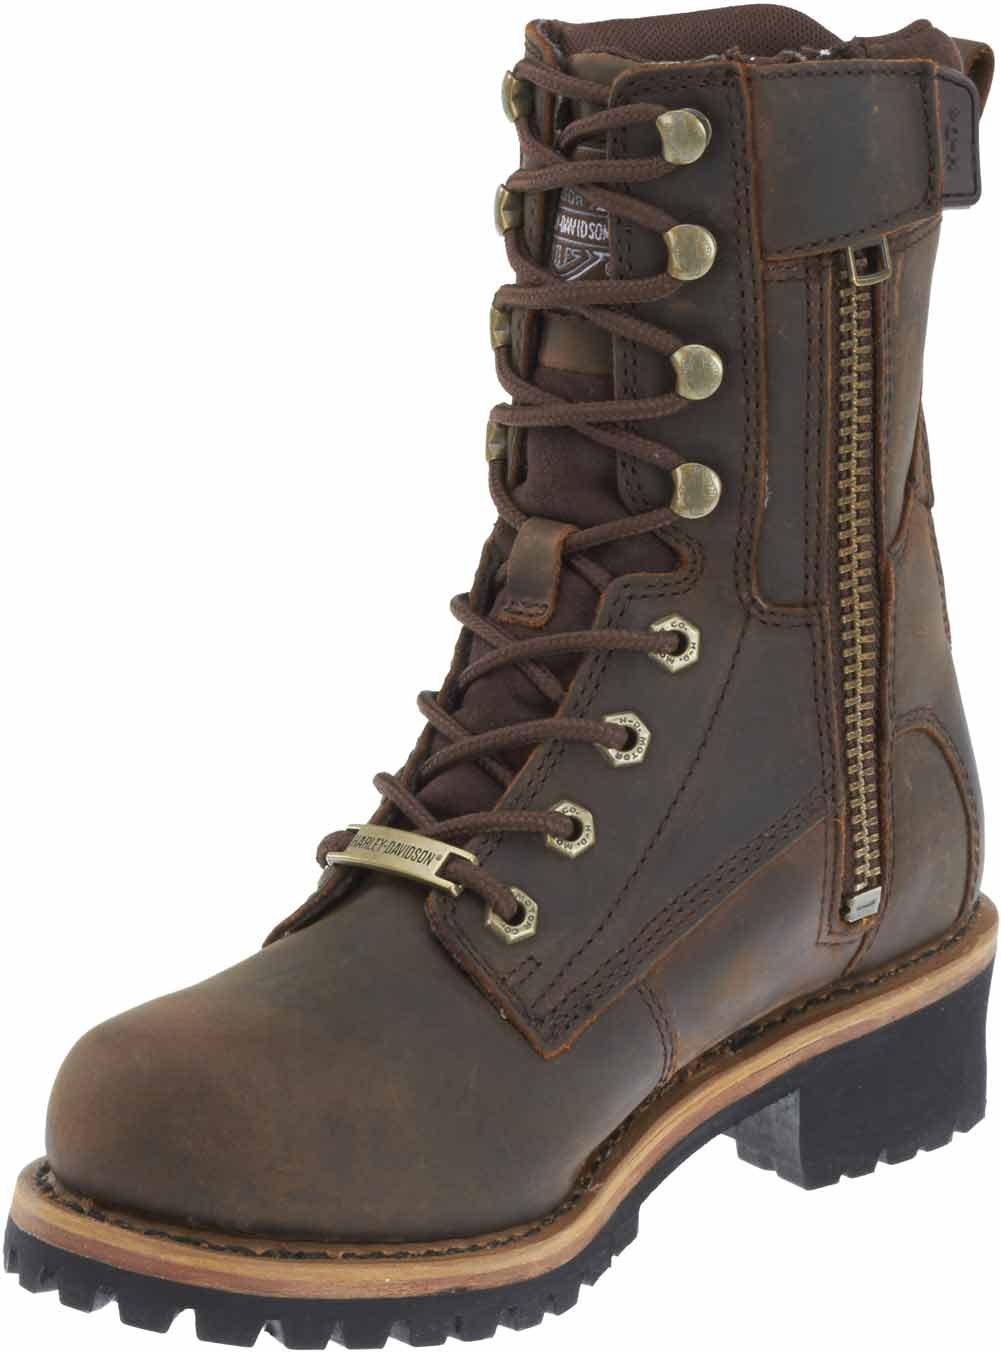 Innovative MSRP $31999 US $40999 CAN Spirit Lake Mens Brown LaceUp Boots In Homage To The Dedicated Men And Women In Spirit Lake, Iowa, Who Build Each And Every Indian Motorcycle With A Passion For Q